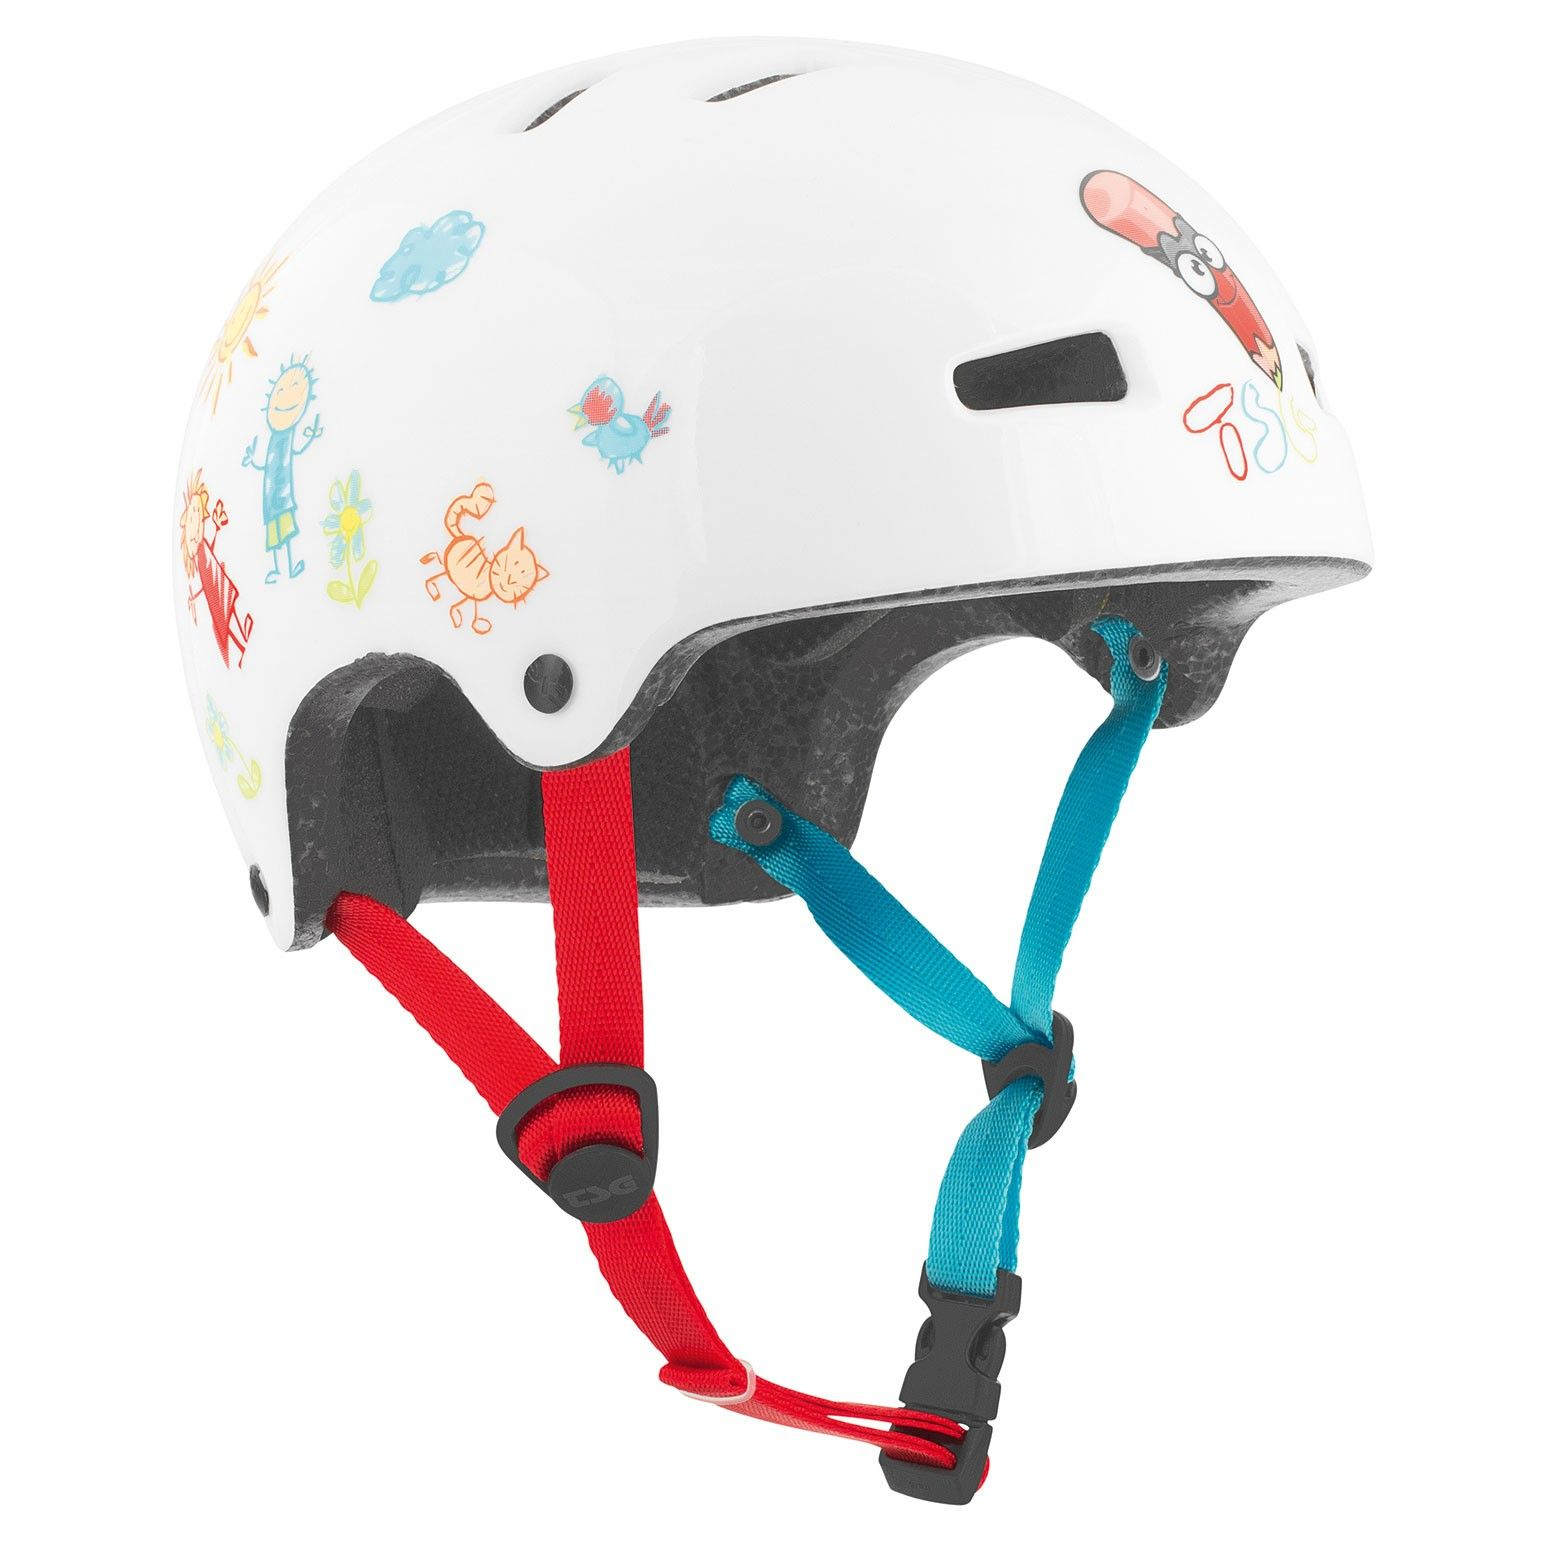 TSG Kinderhelm Fahrradhelm Skateboardhelm Nipper Mini Maxi Graphic Design